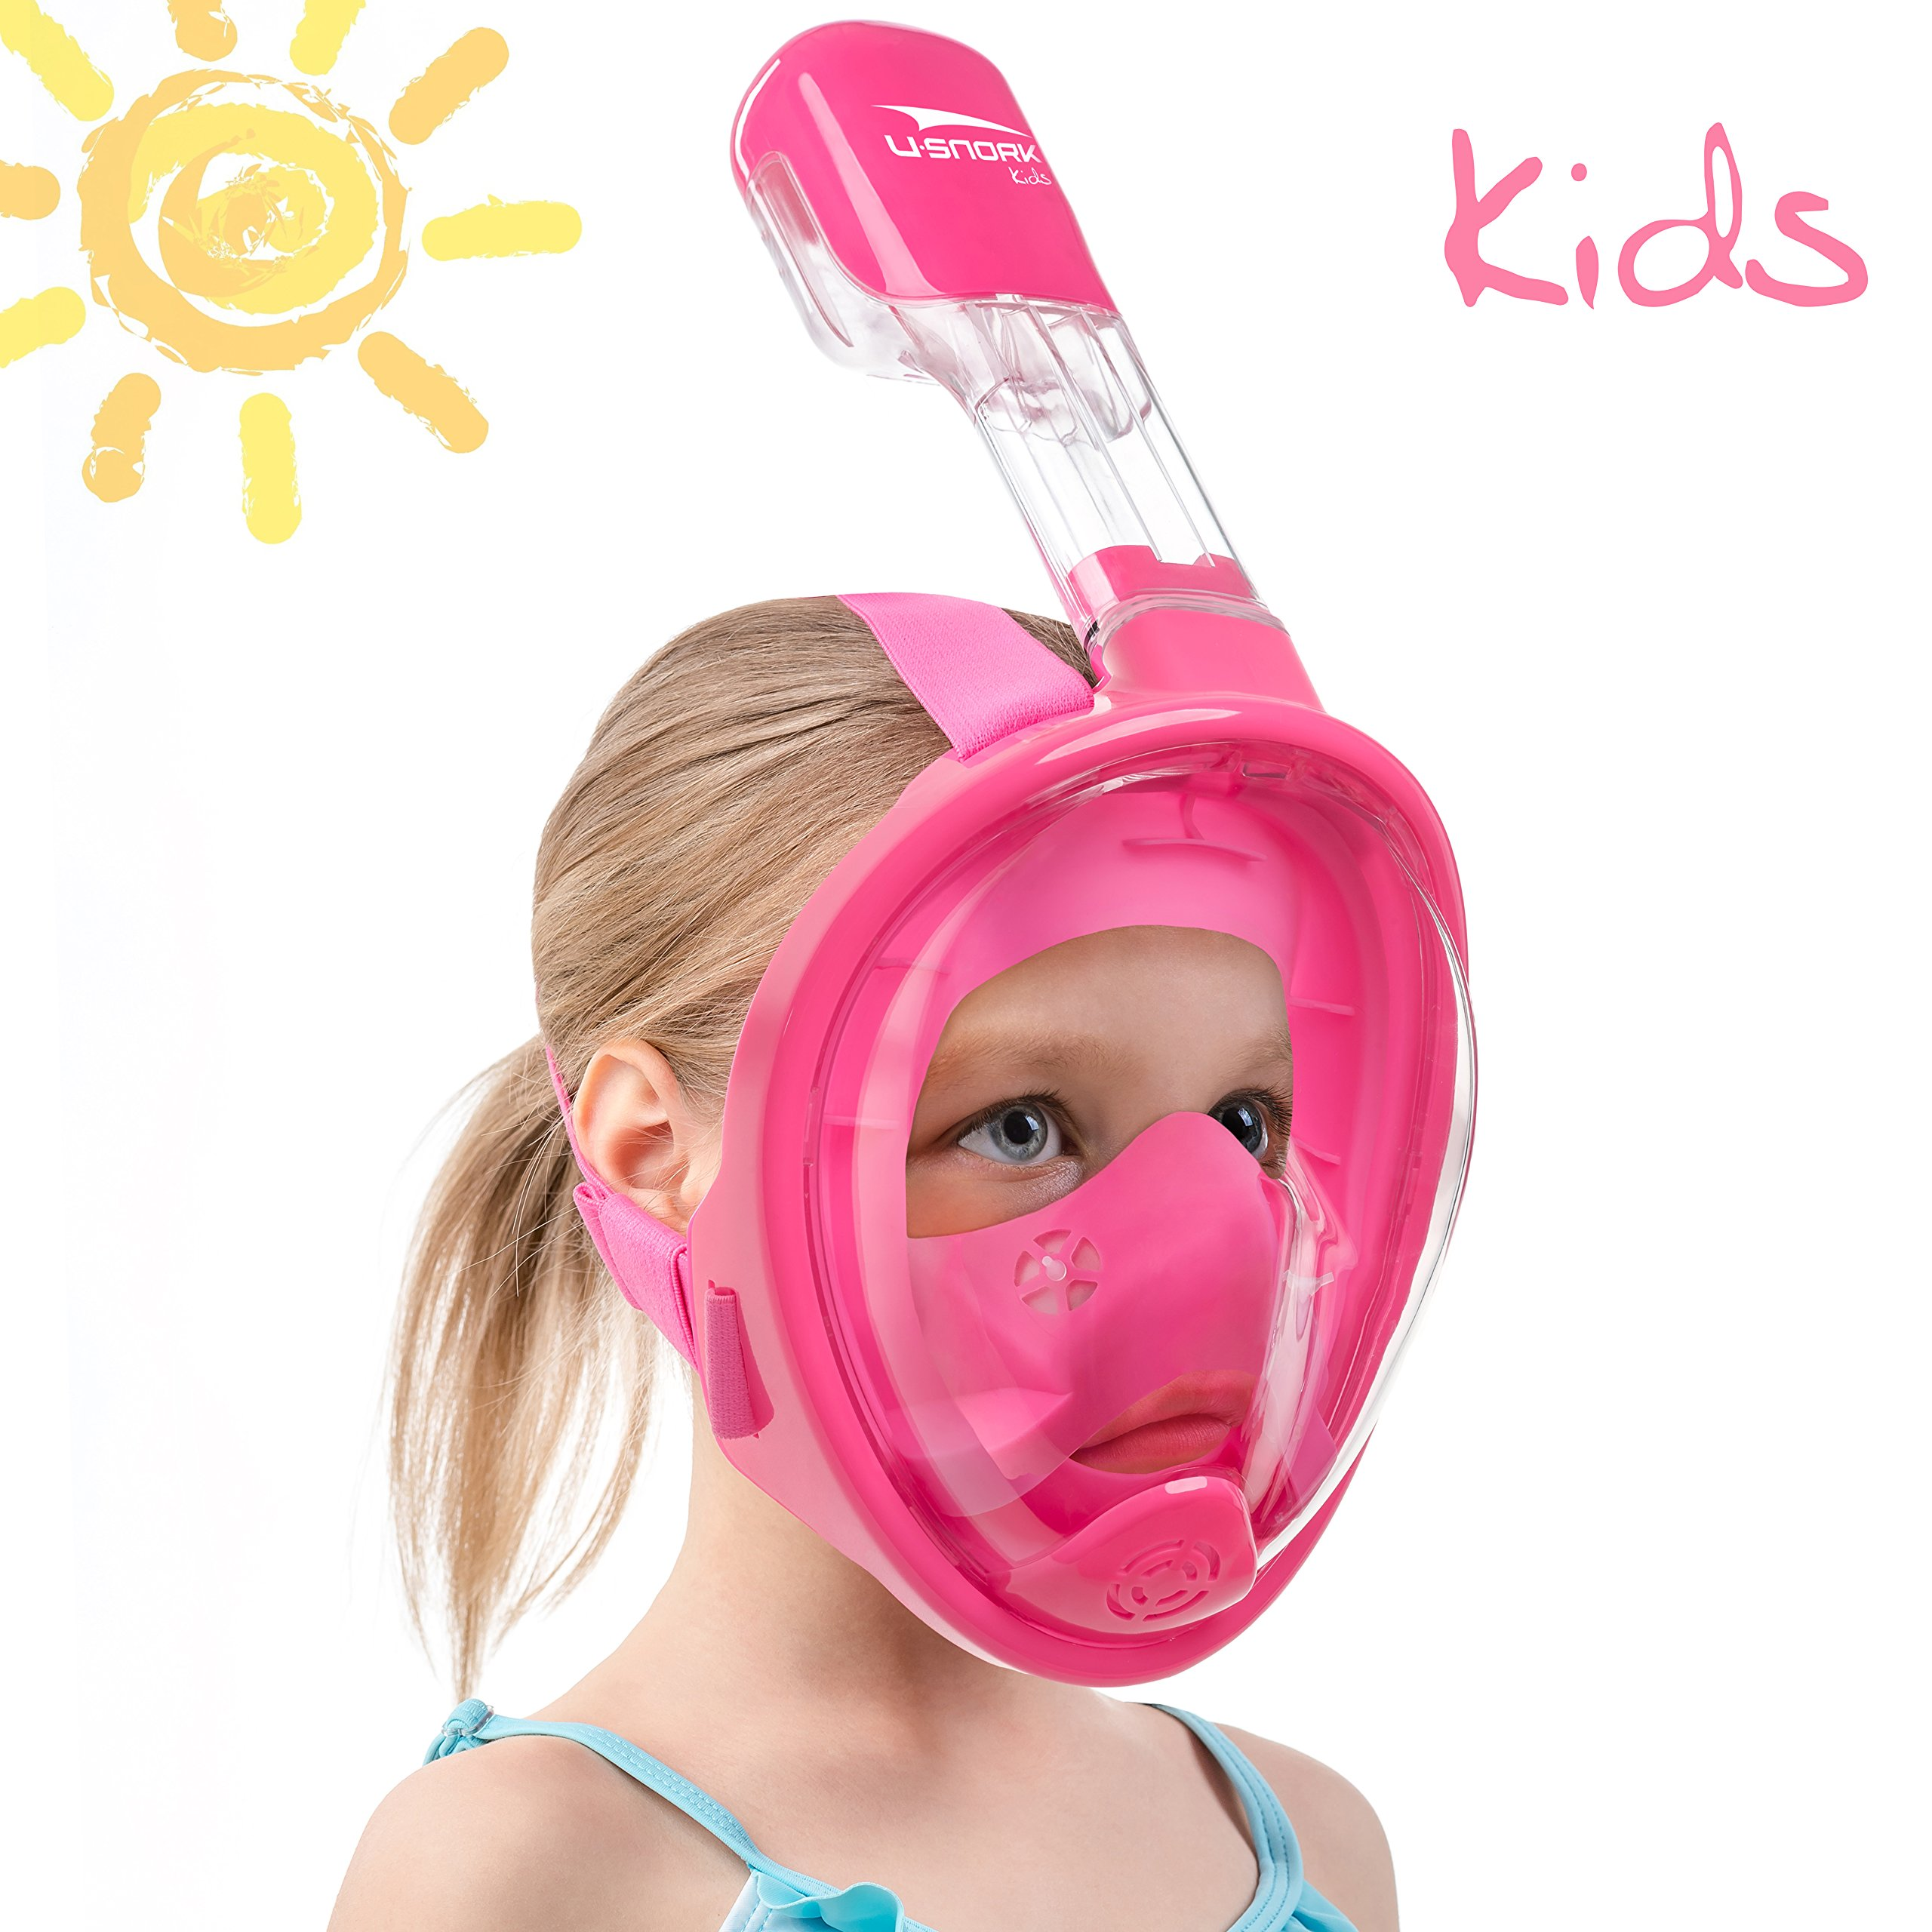 Usnork Full Face Snorkel Mask for Kids and Adults - Snorkel Set with 4 Bonus Items - Anti-Fog and Anti-Leak Easybreath Snorkeling Gear - Dive Scuba Mask with 180 Panoramic View (Pink Kids, X-Small)